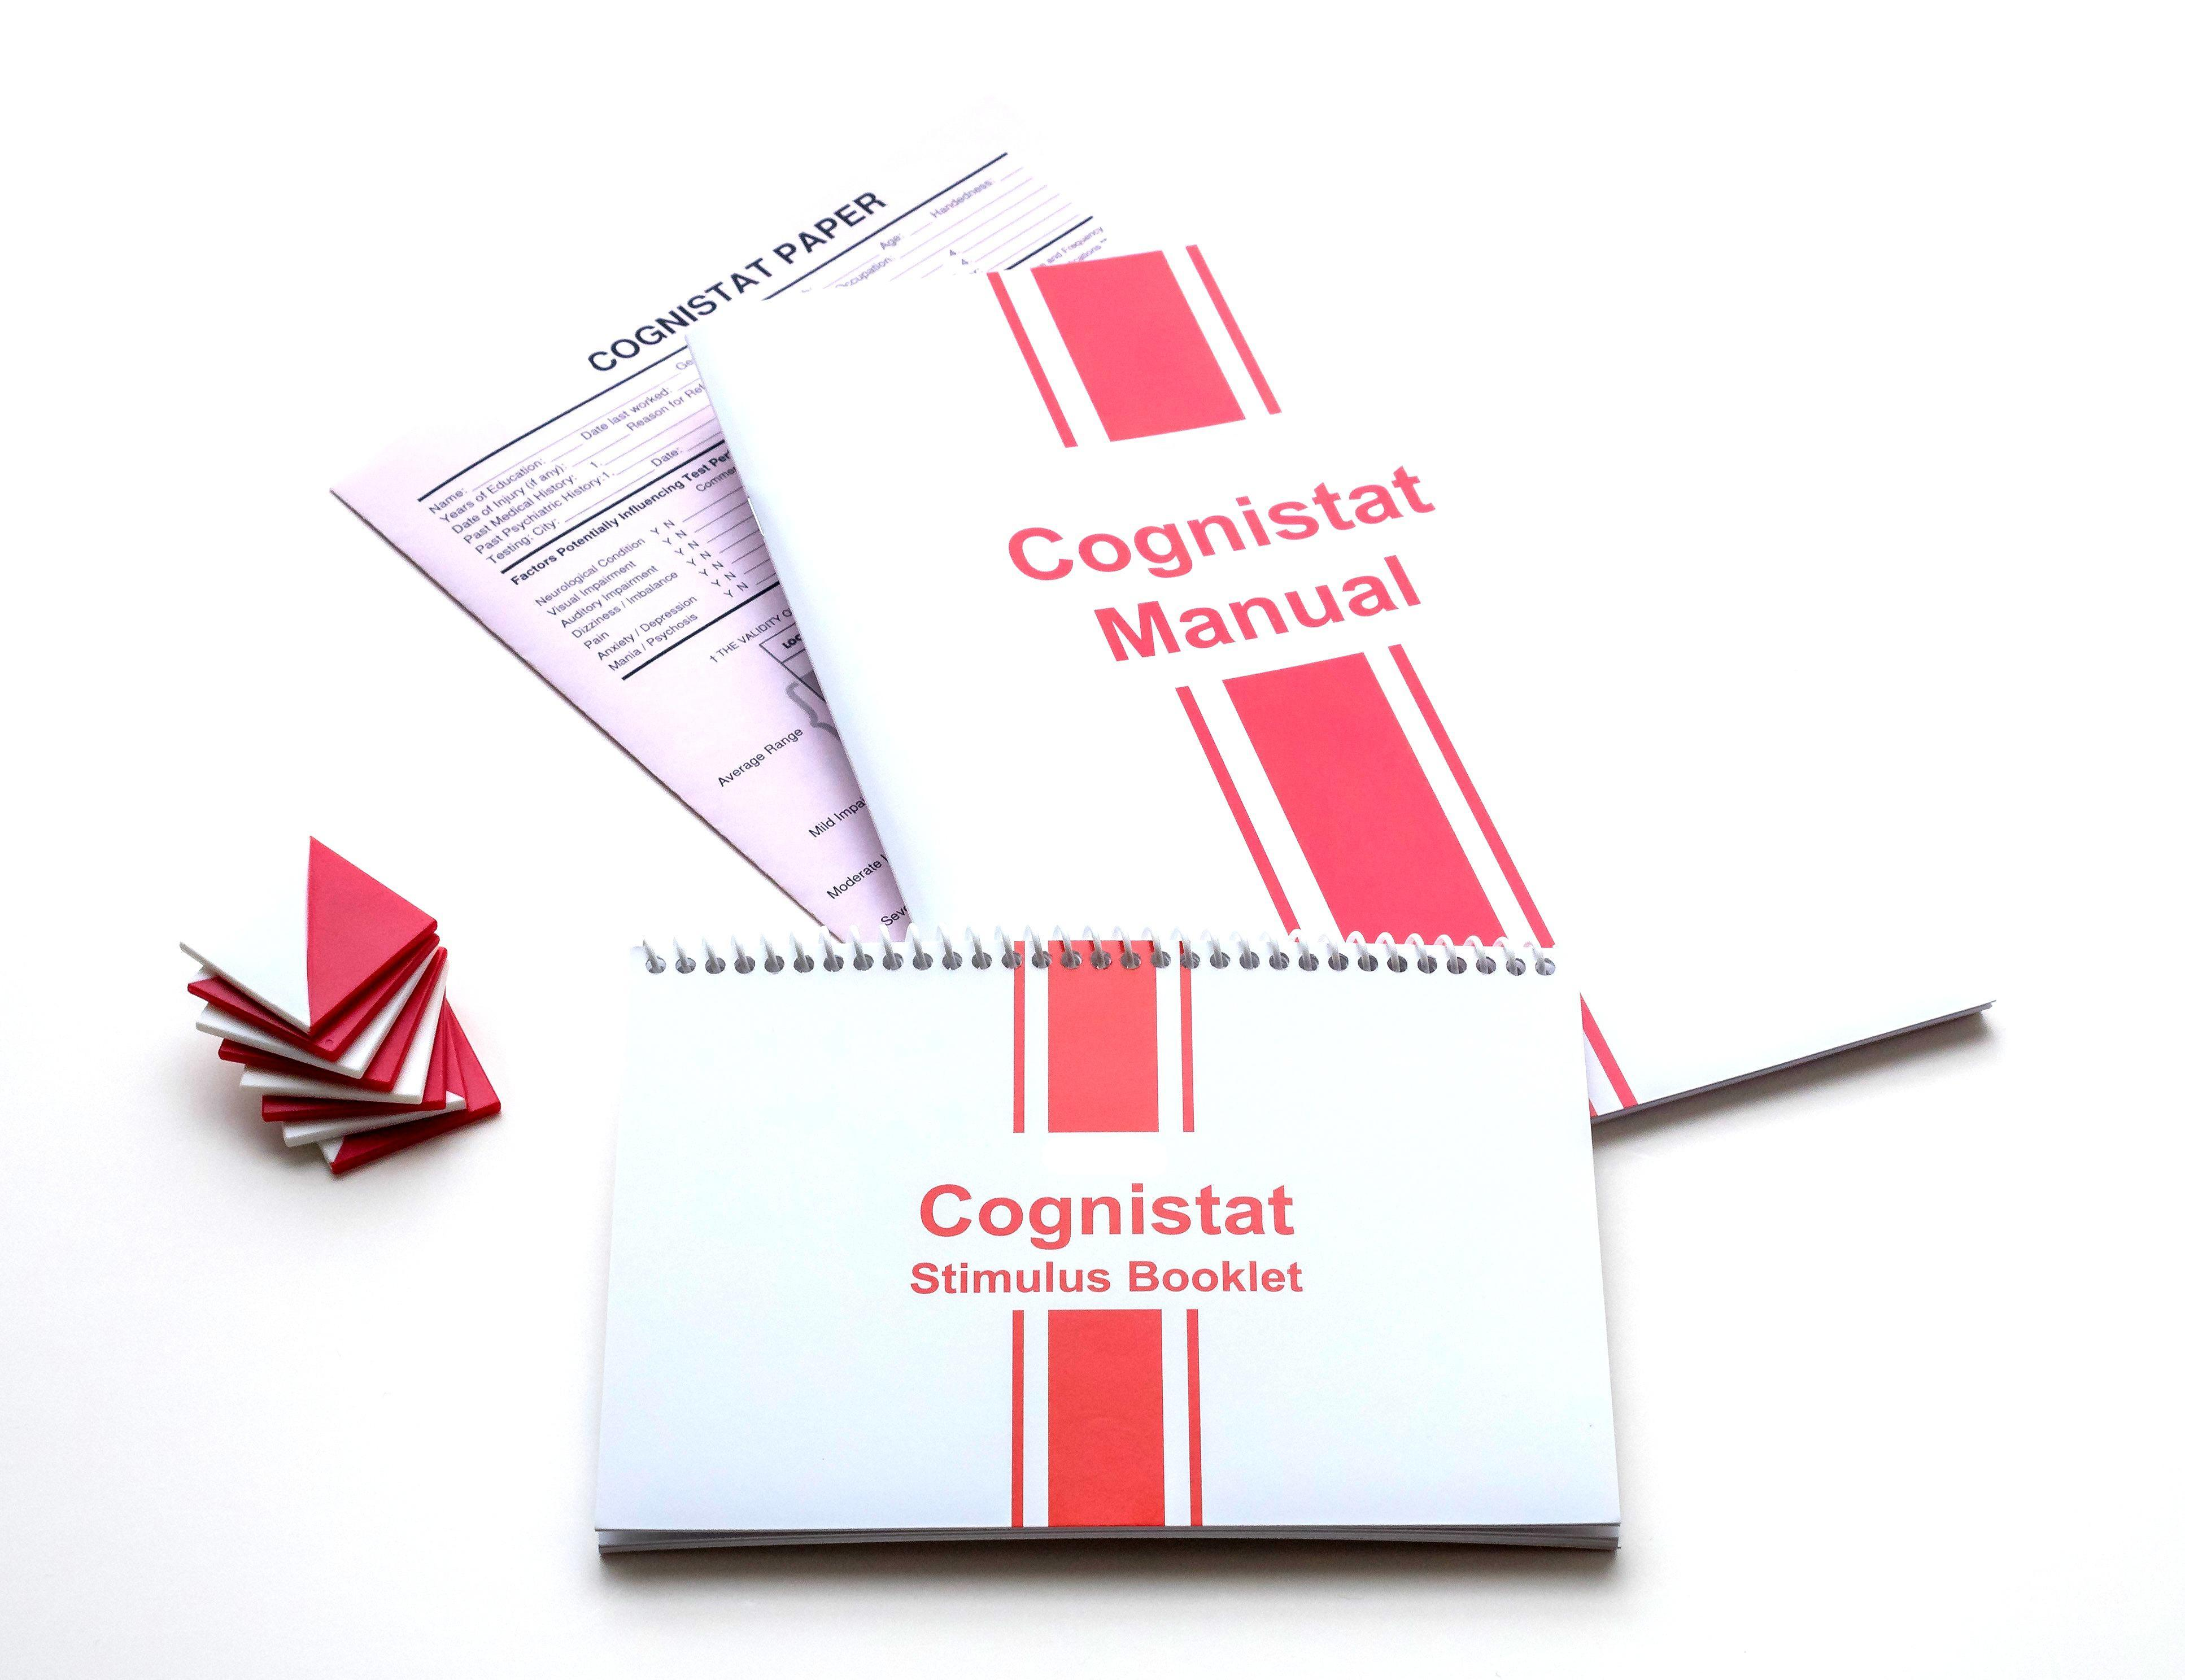 Manual for cognistat the therapy store 2015 array cognistat starter kit cognistat cognitive assessment rh cognistat com fandeluxe Gallery